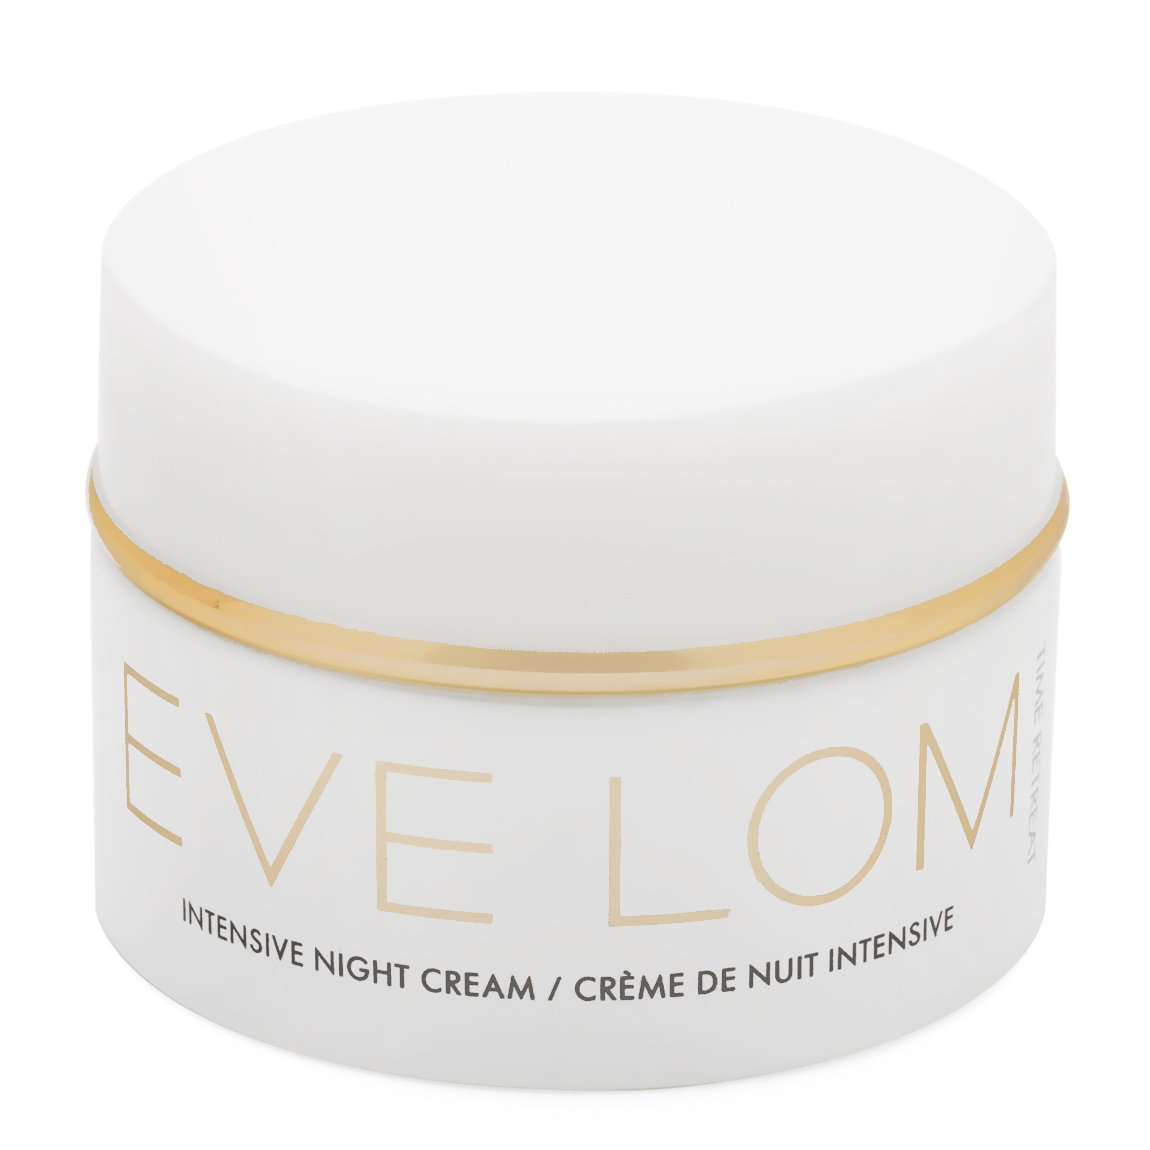 EVE LOM Time Retreat Intensive Night Cream product smear.